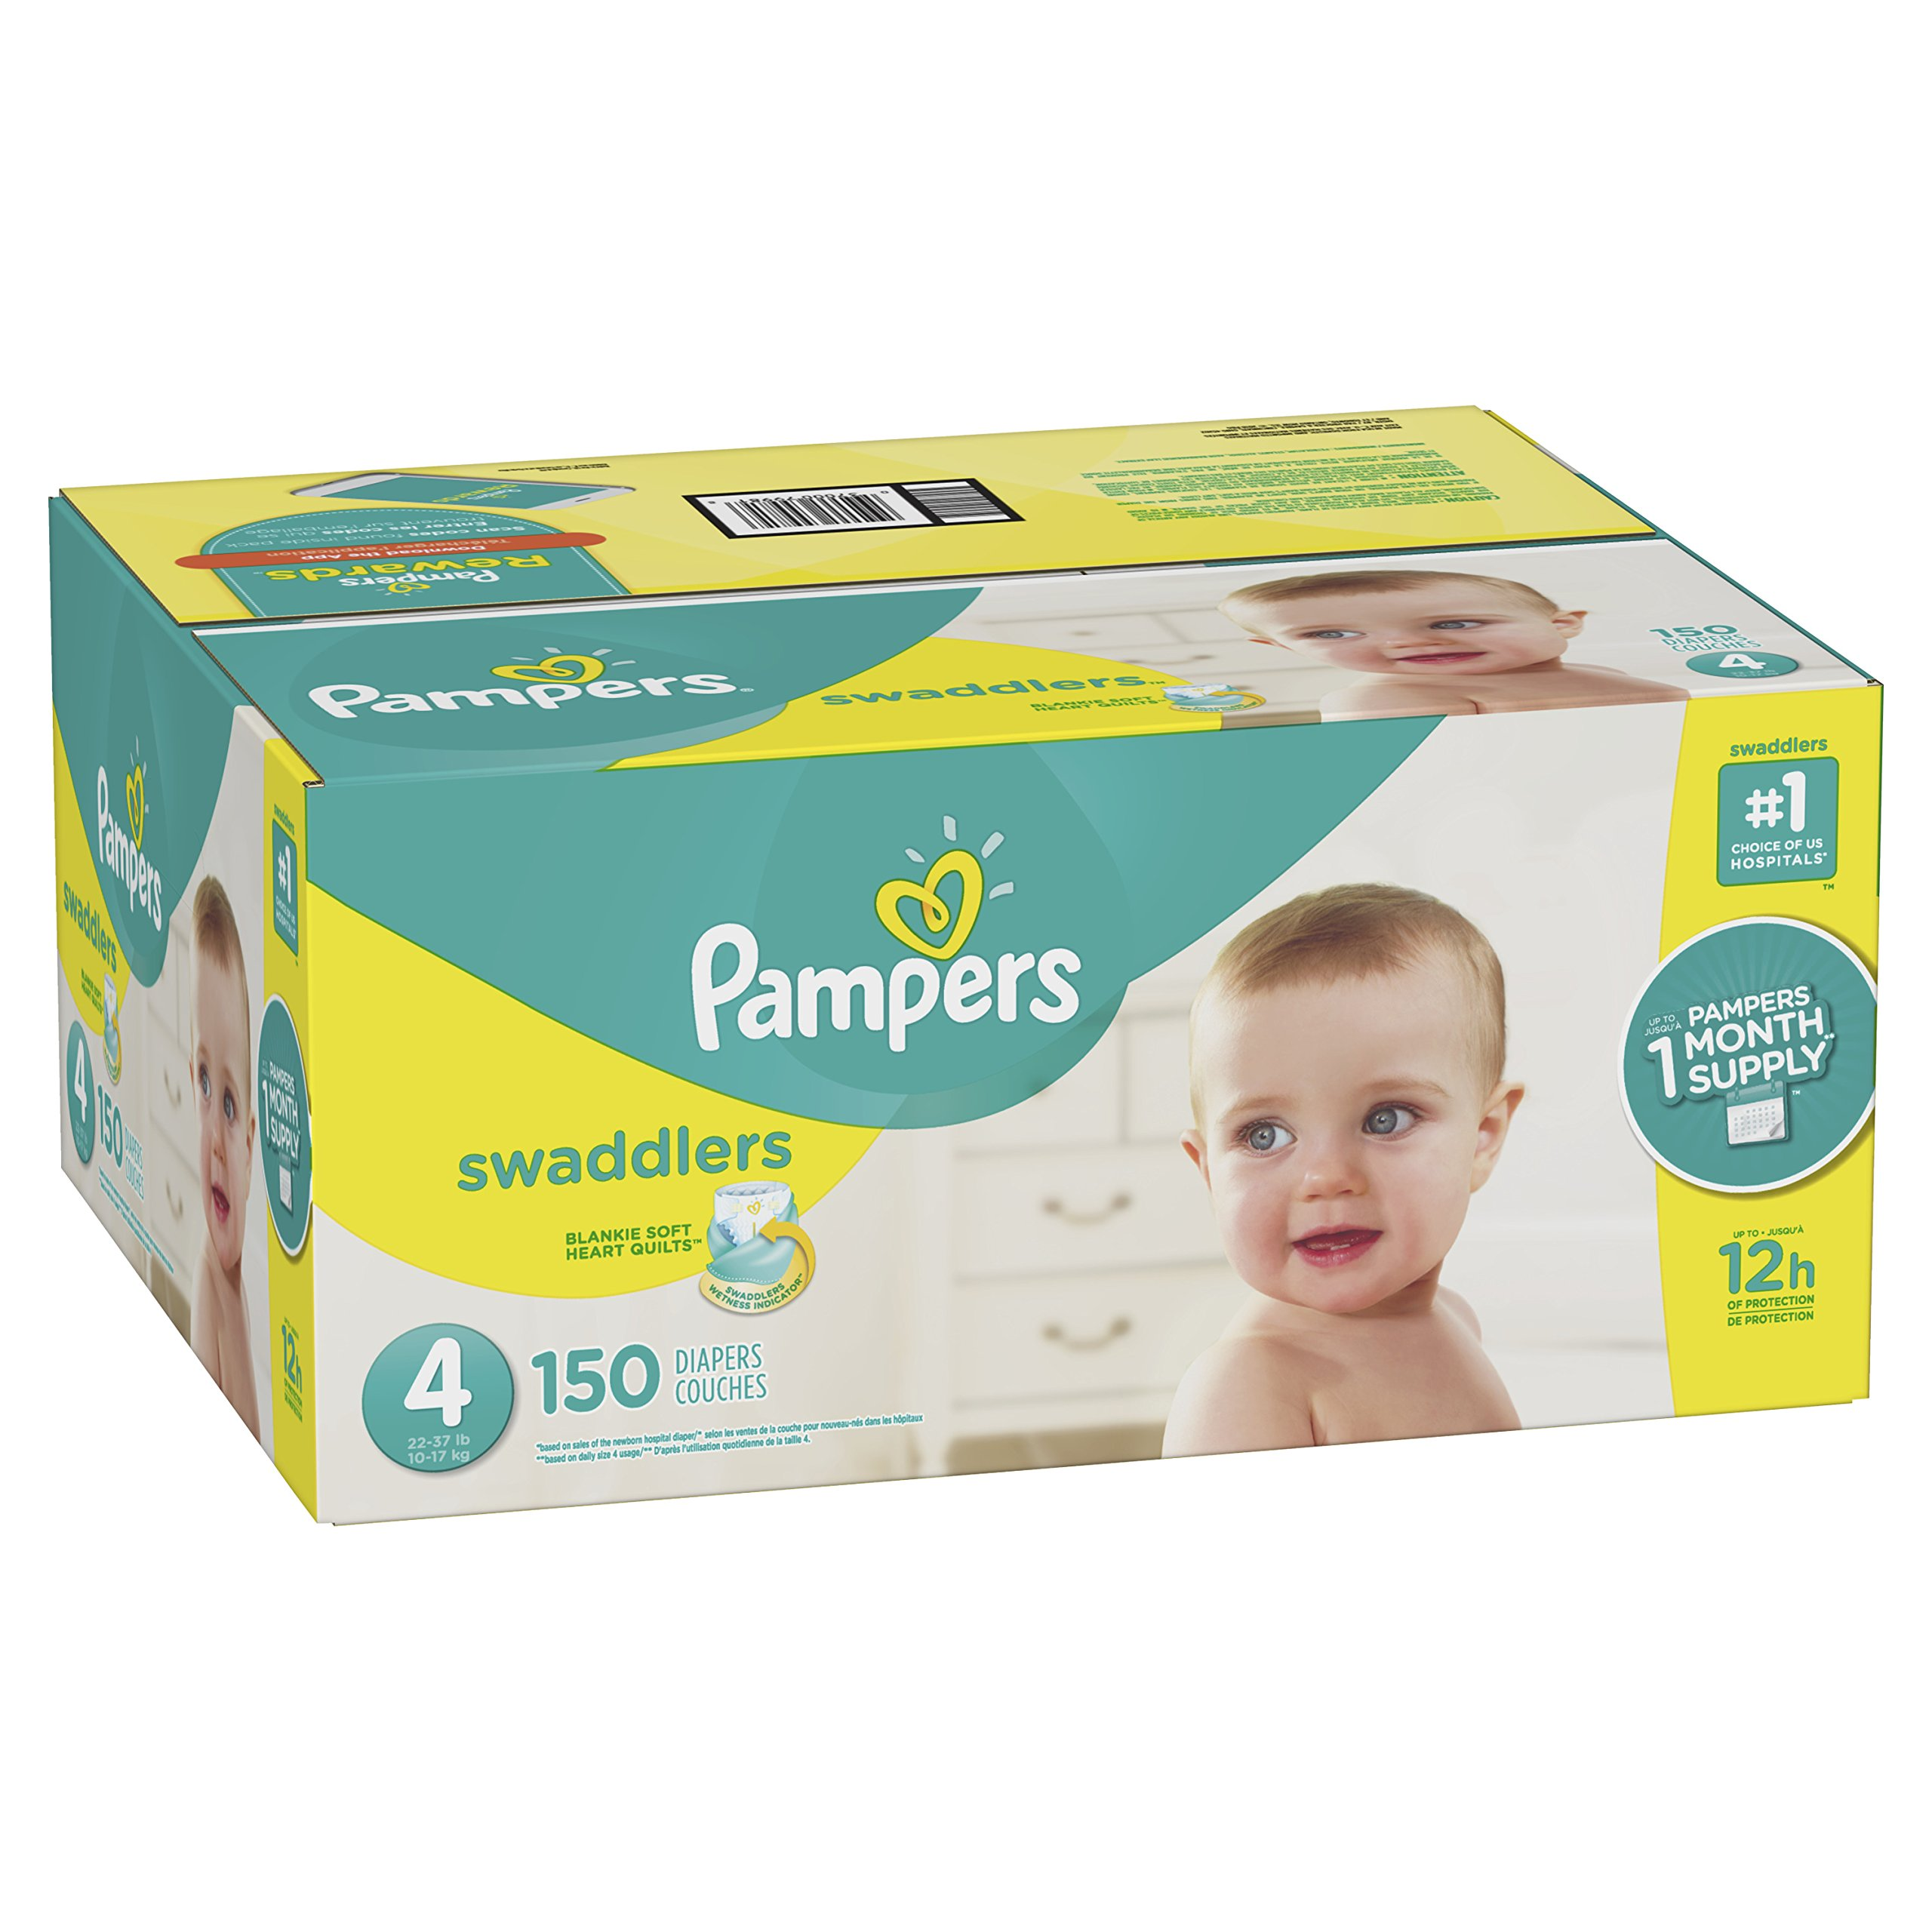 Pampers Swaddlers Disposable Diapers Size 4, 150 Count, ONE MONTH SUPPLY